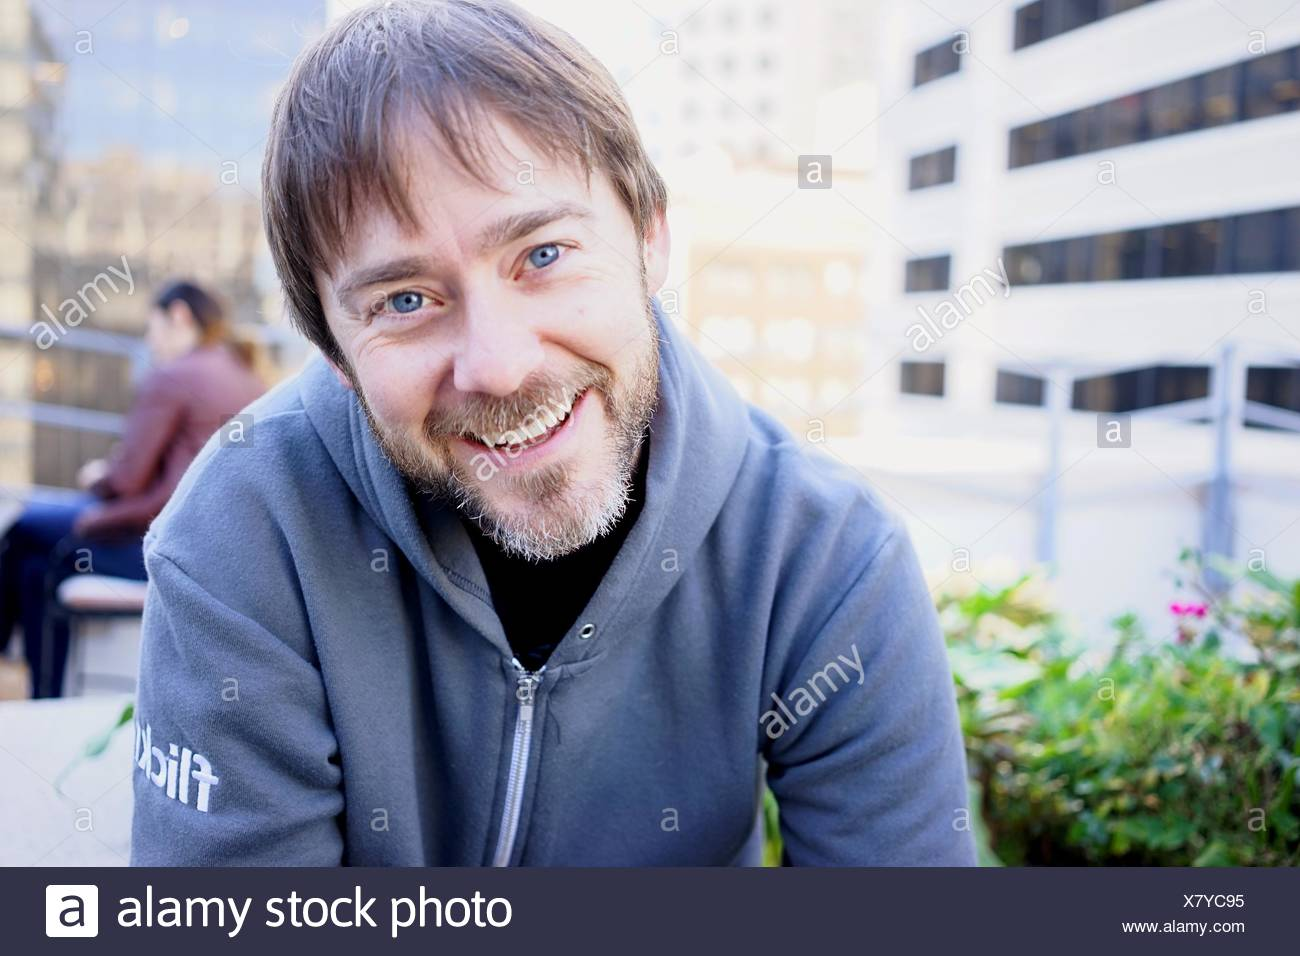 Portrait Of A Smiling Young Man Photo Stock